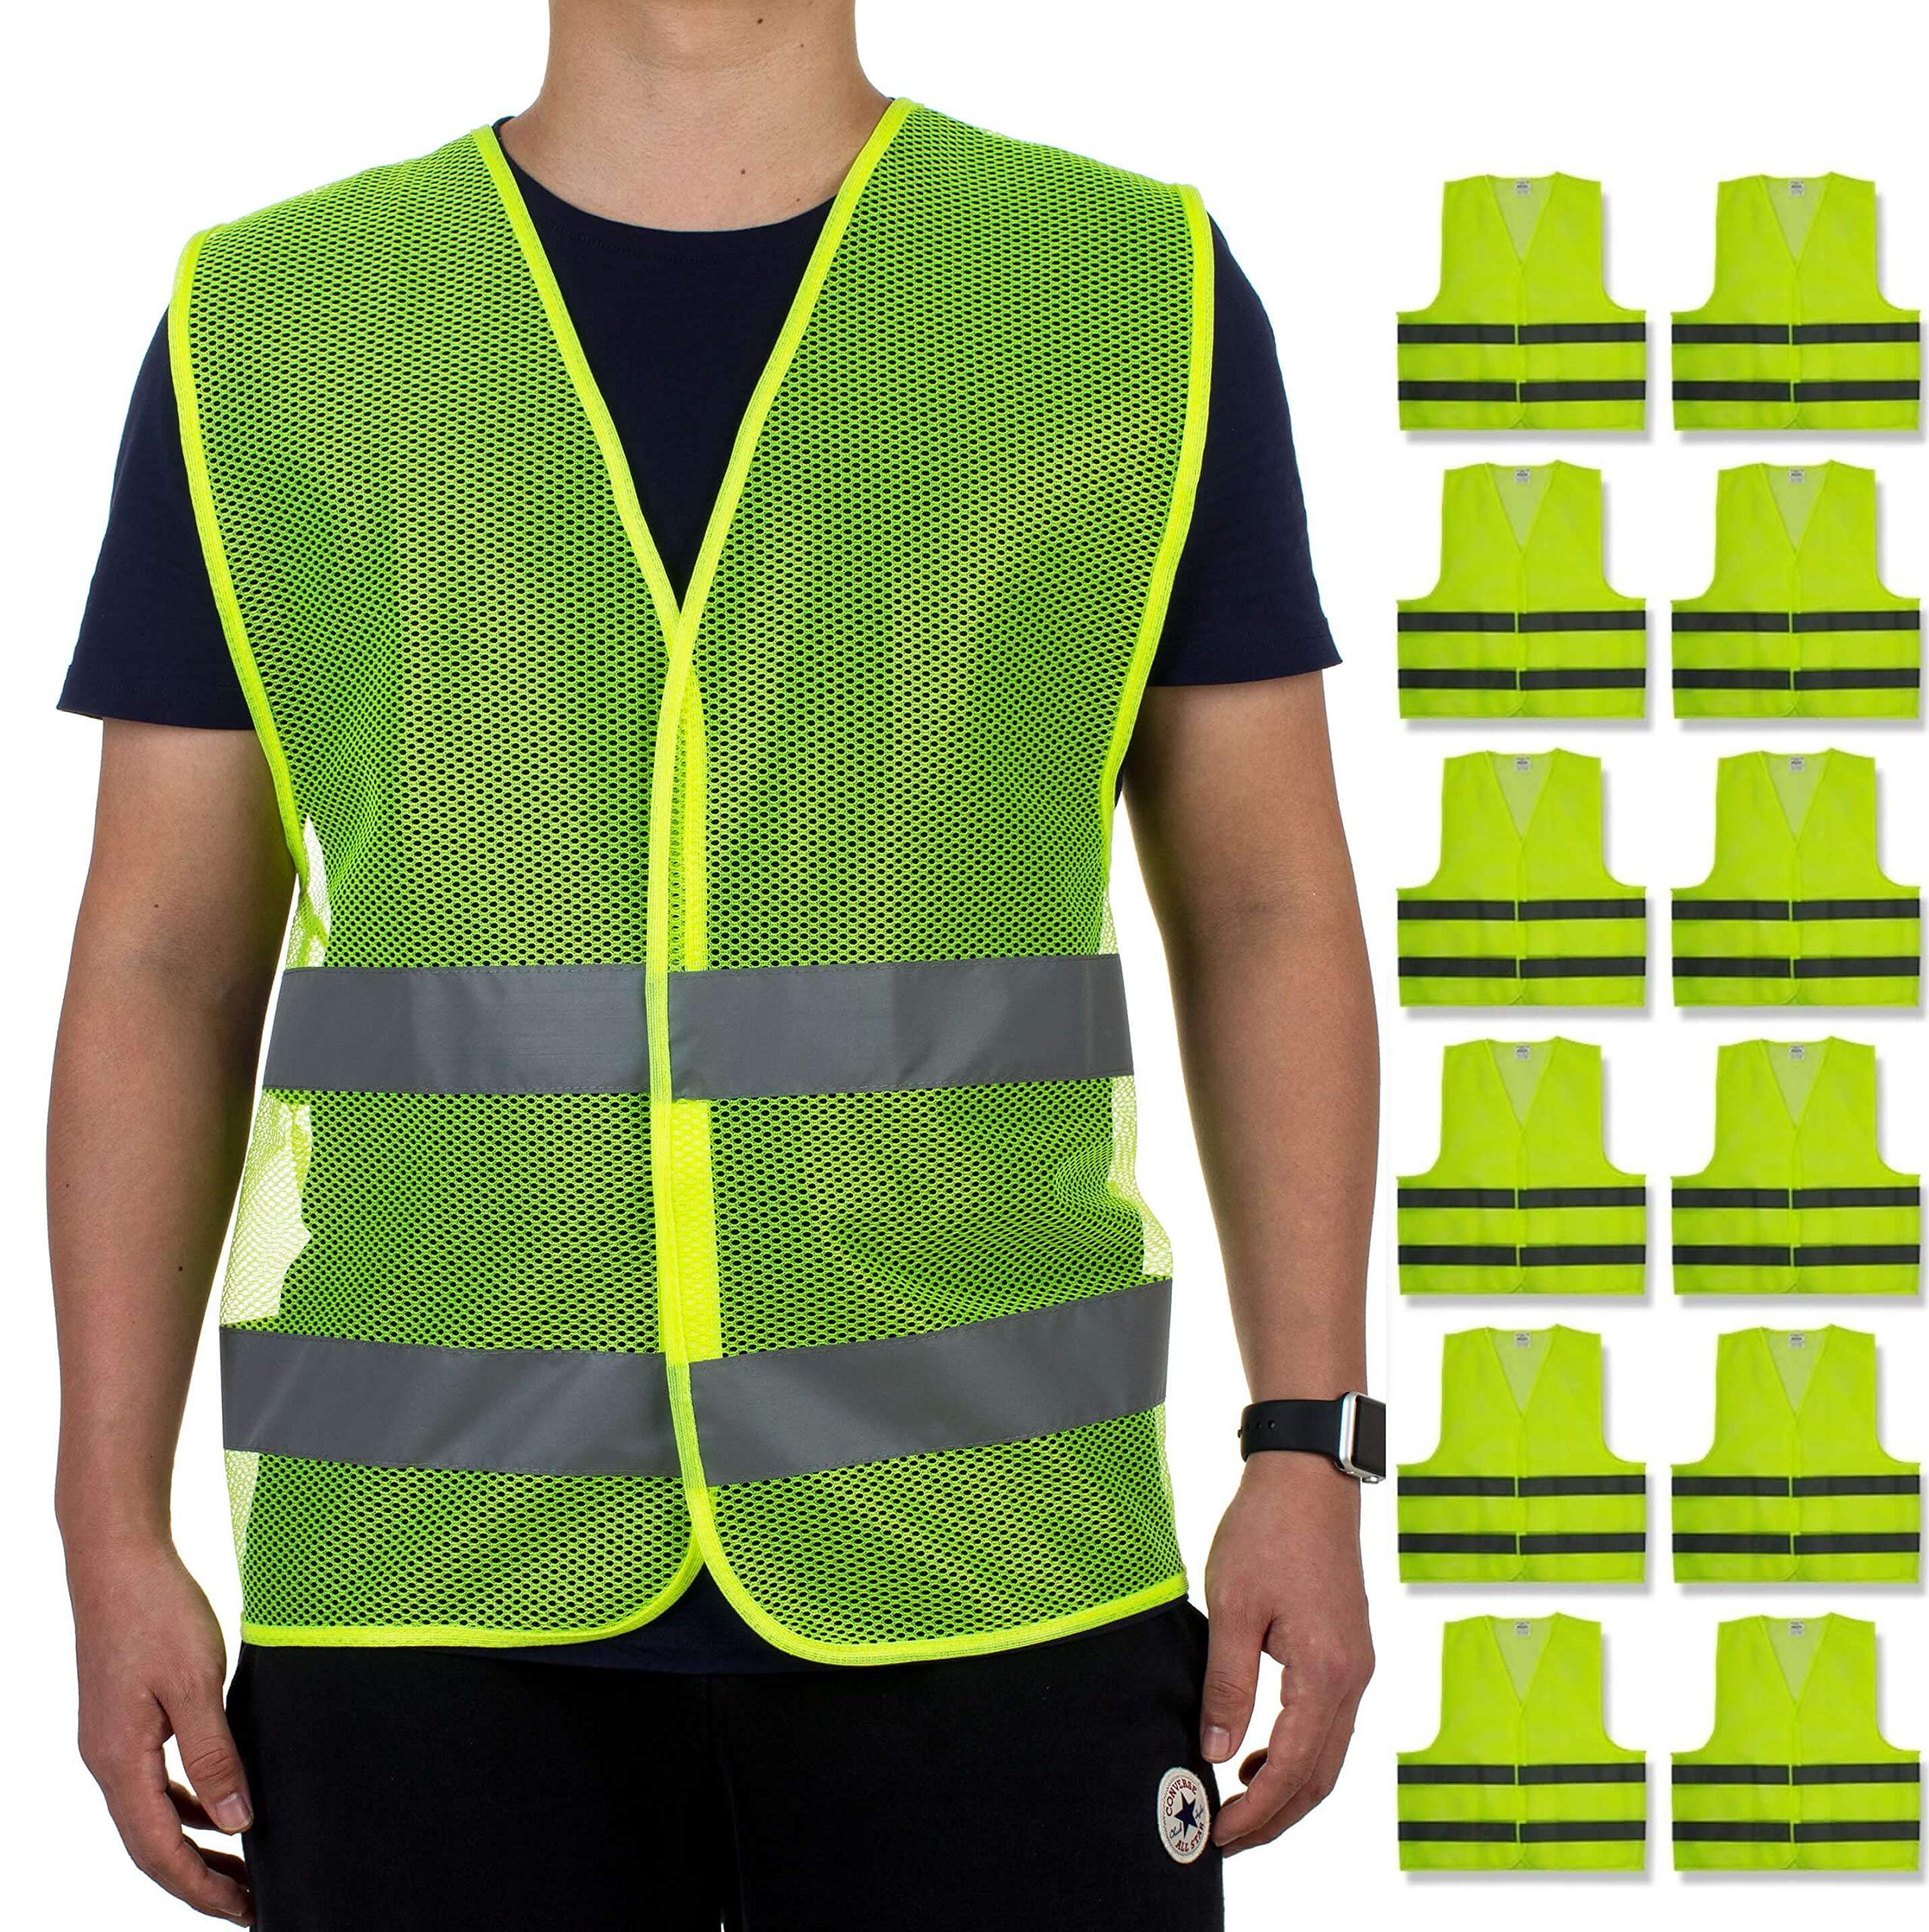 Reflective Safety Vests - Pack of 12 | High Visibility Neon Yellow Mesh | Fits Men and Women | For Construction and Surveyor Work, Security, Emergency, Event Volunteers, Traffic and Parking Workers